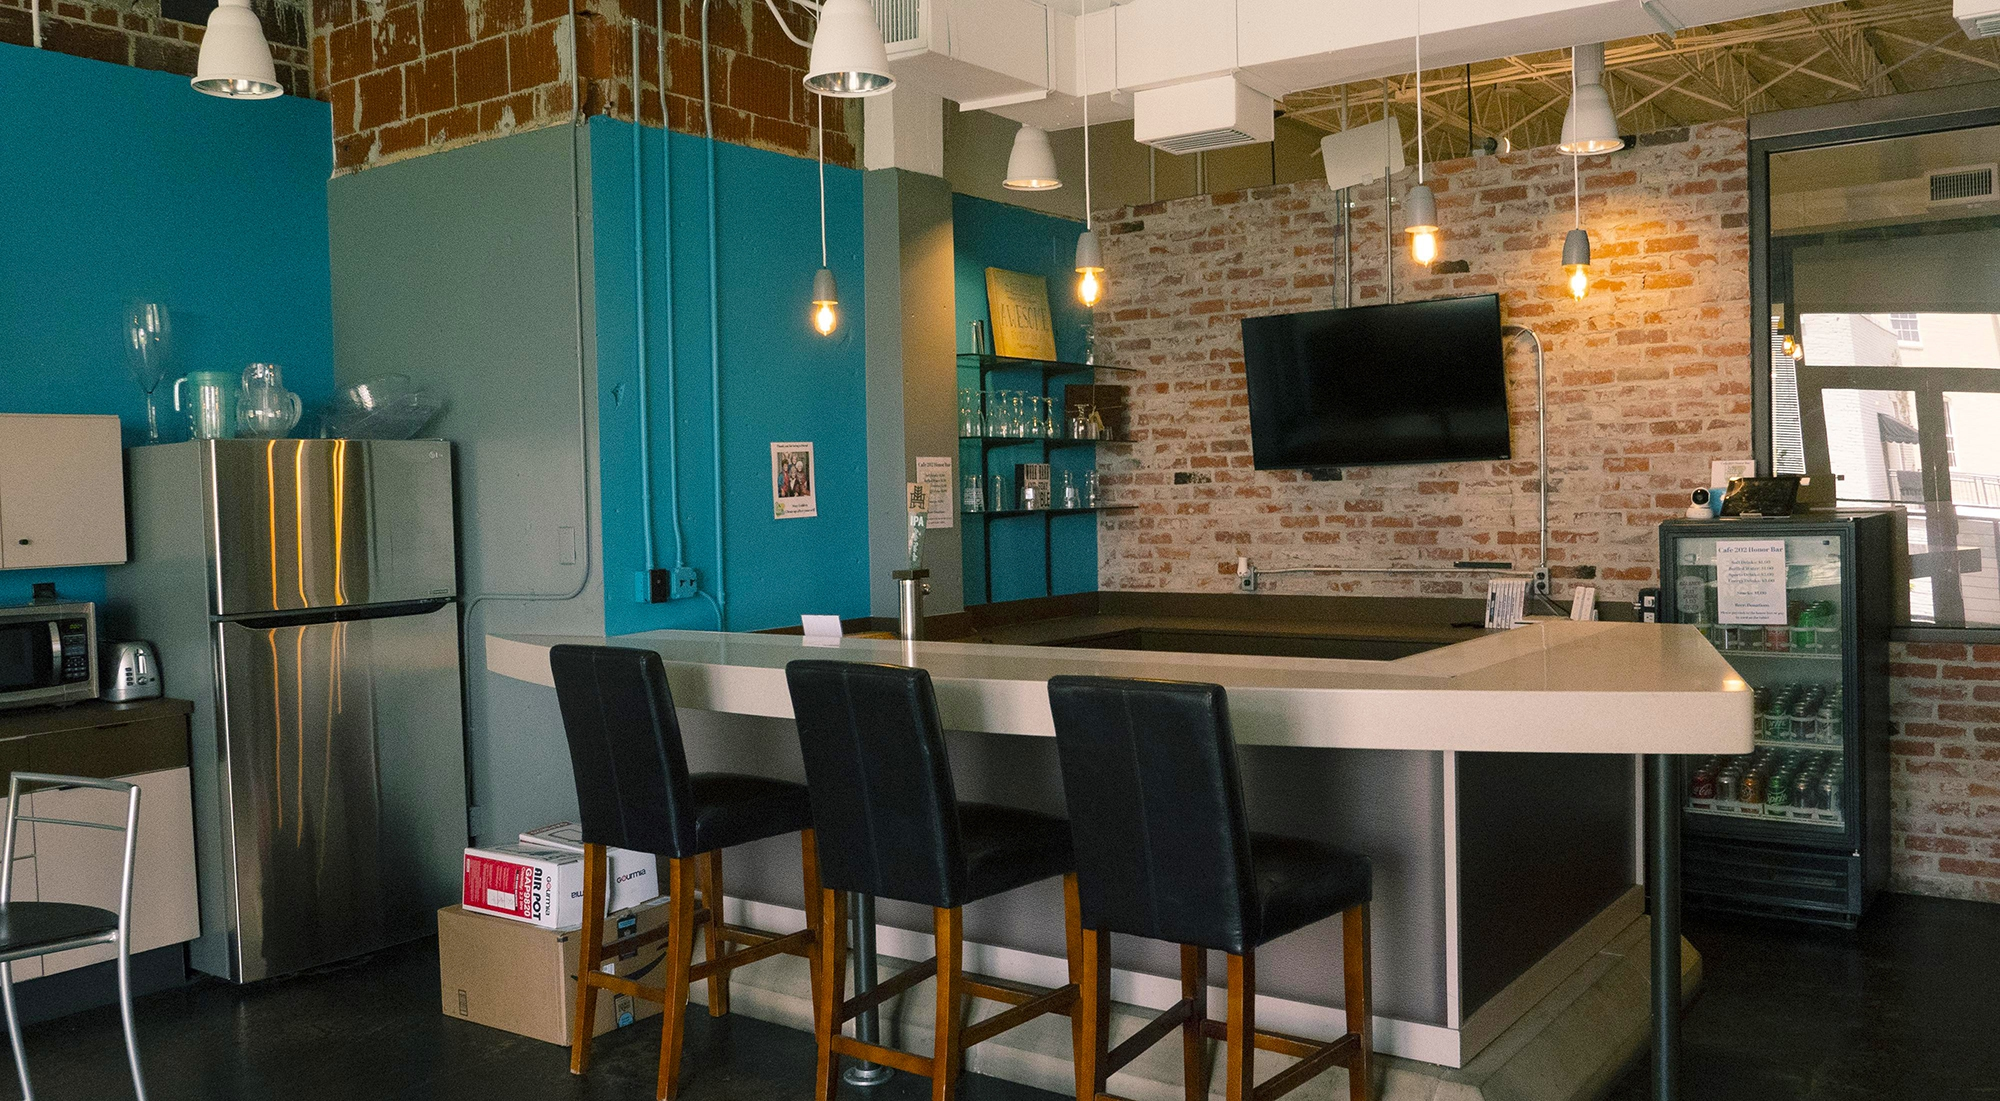 Coworking Spaces in Downtown Mobile - For All Things Mobile